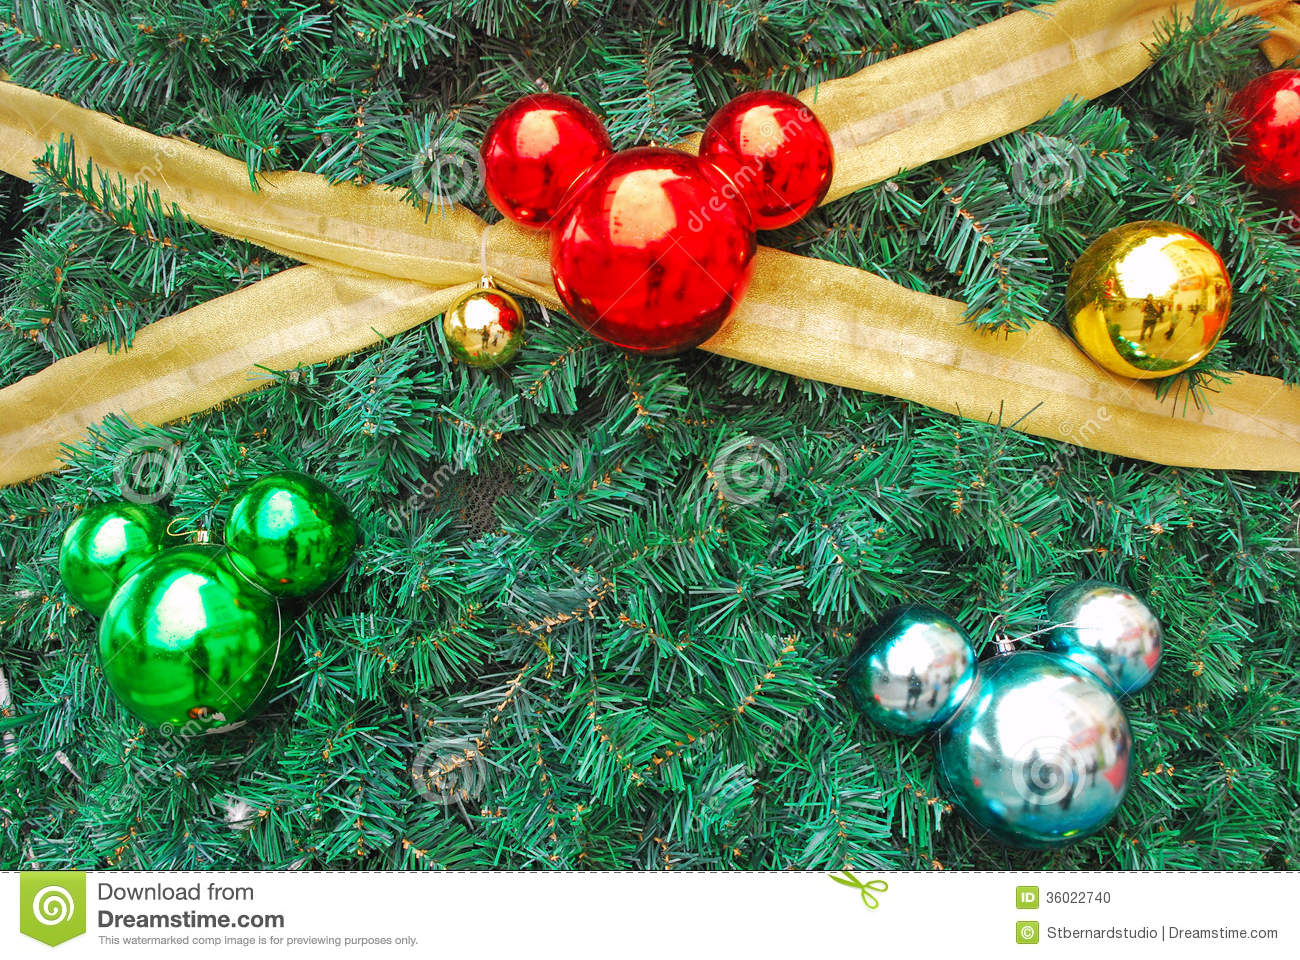 mickey mouse shaped ornaments as chistmas decorati